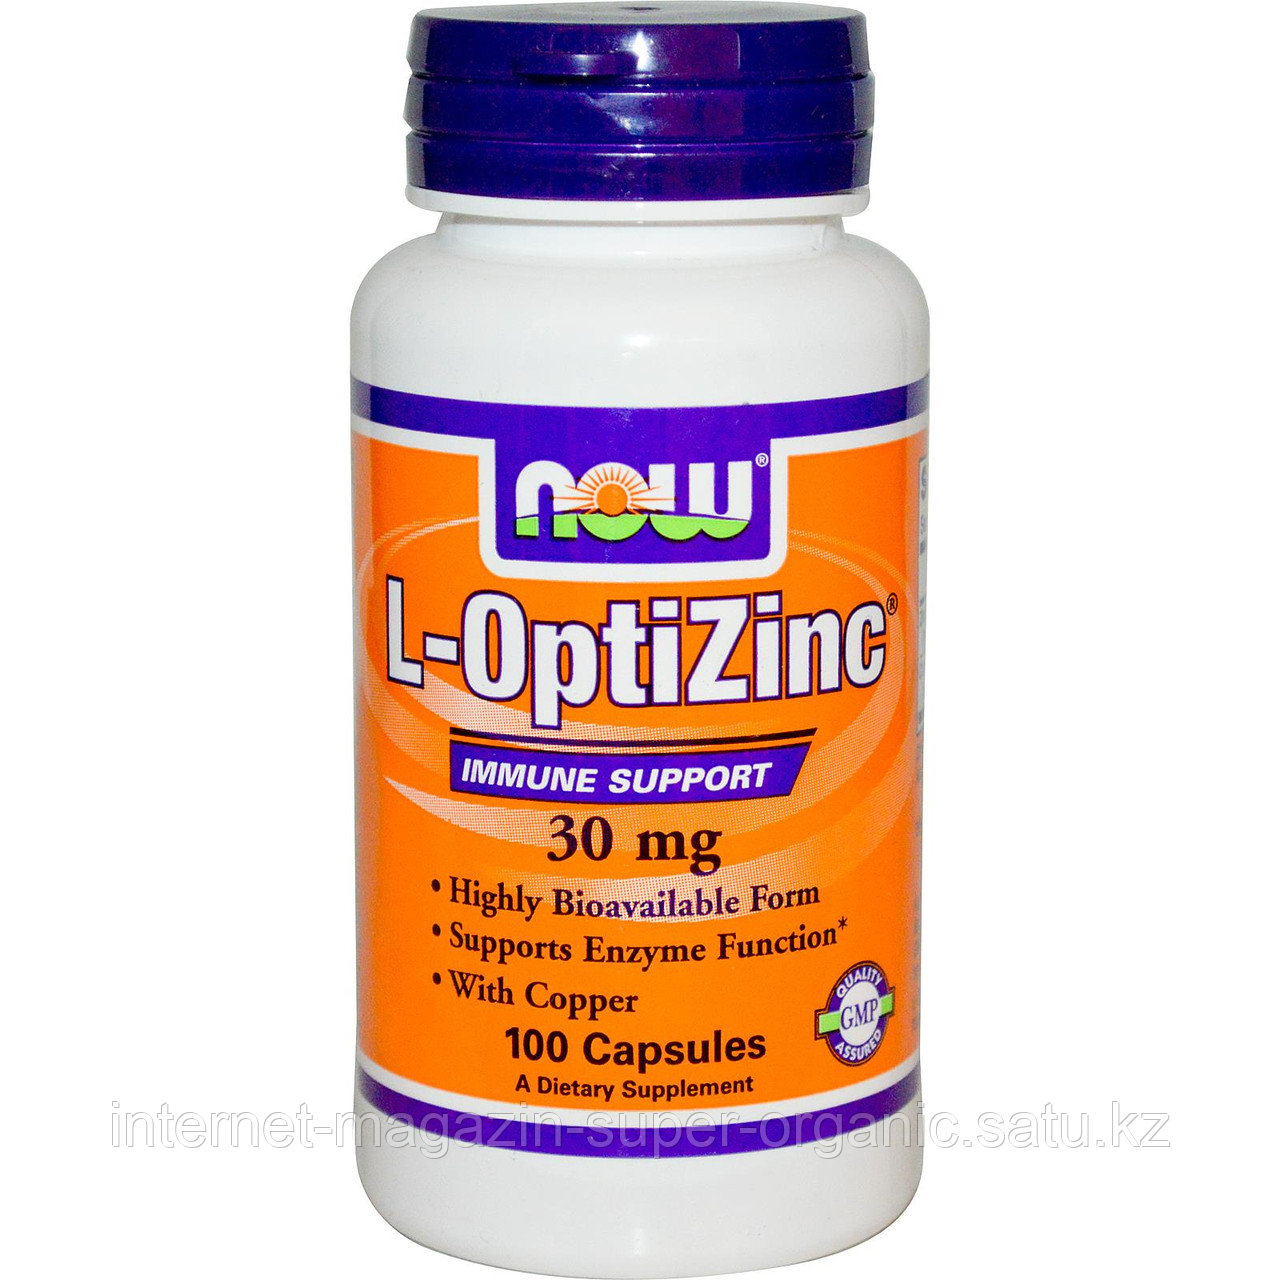 Цинк (L-OptiZinc), 30 мг, 100 капсул, Now Foods